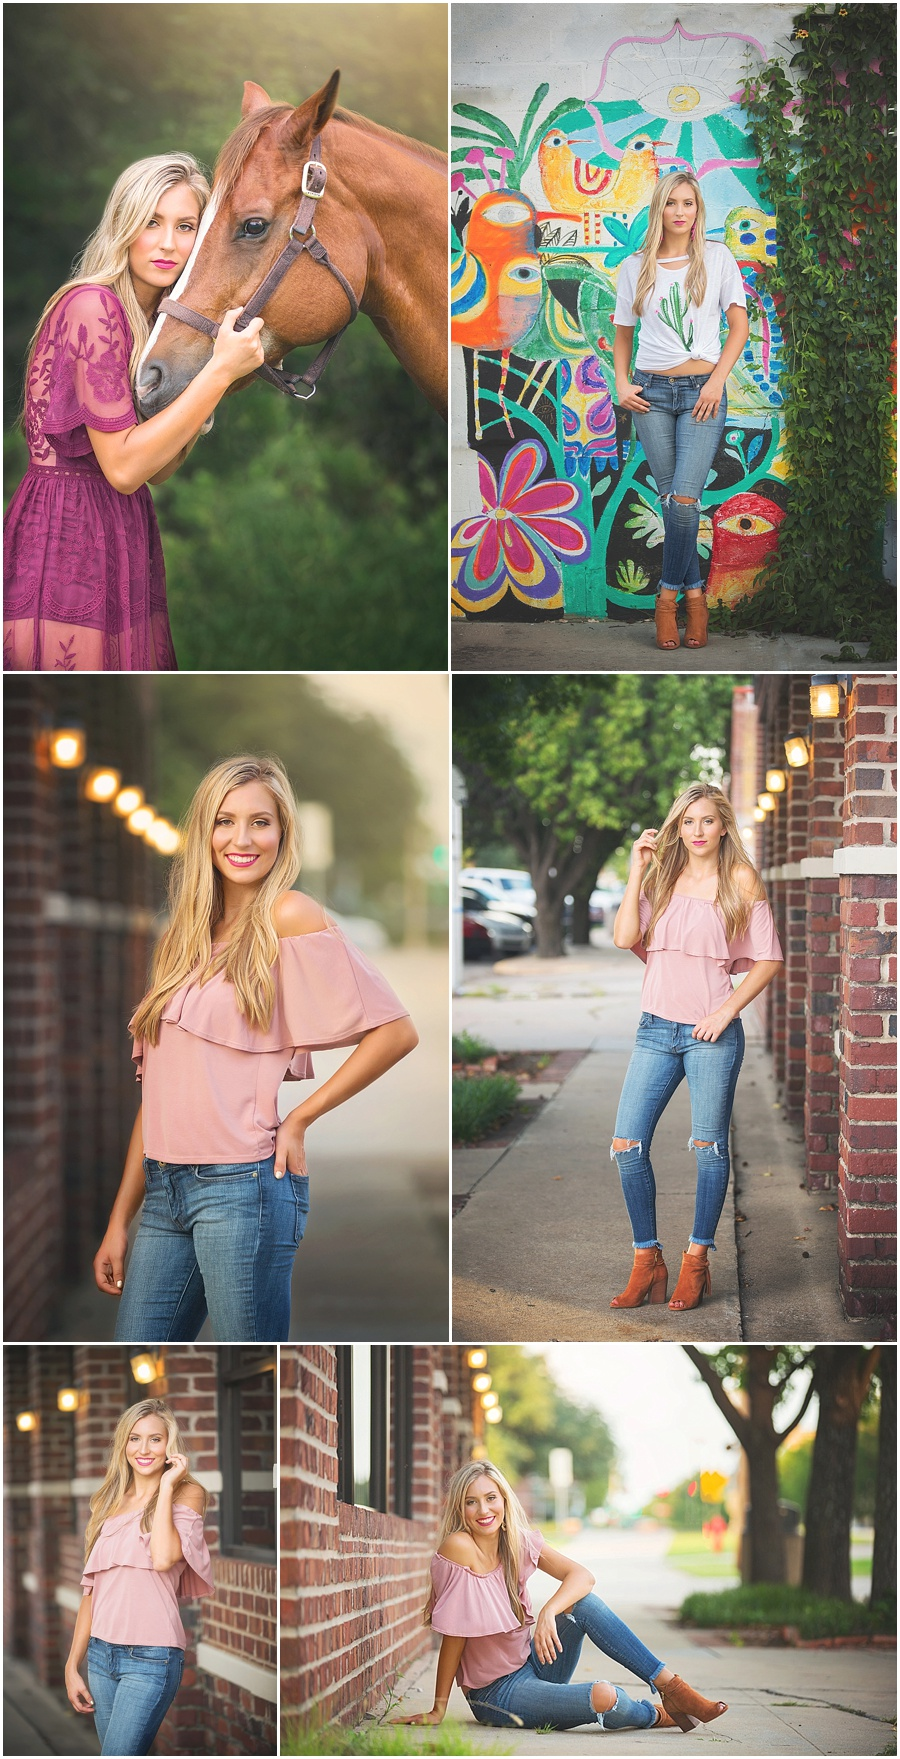 Oklahoma-City-Norman-high-school-North-senior-urban-photographer-Cannon-Peyton_0026.jpg